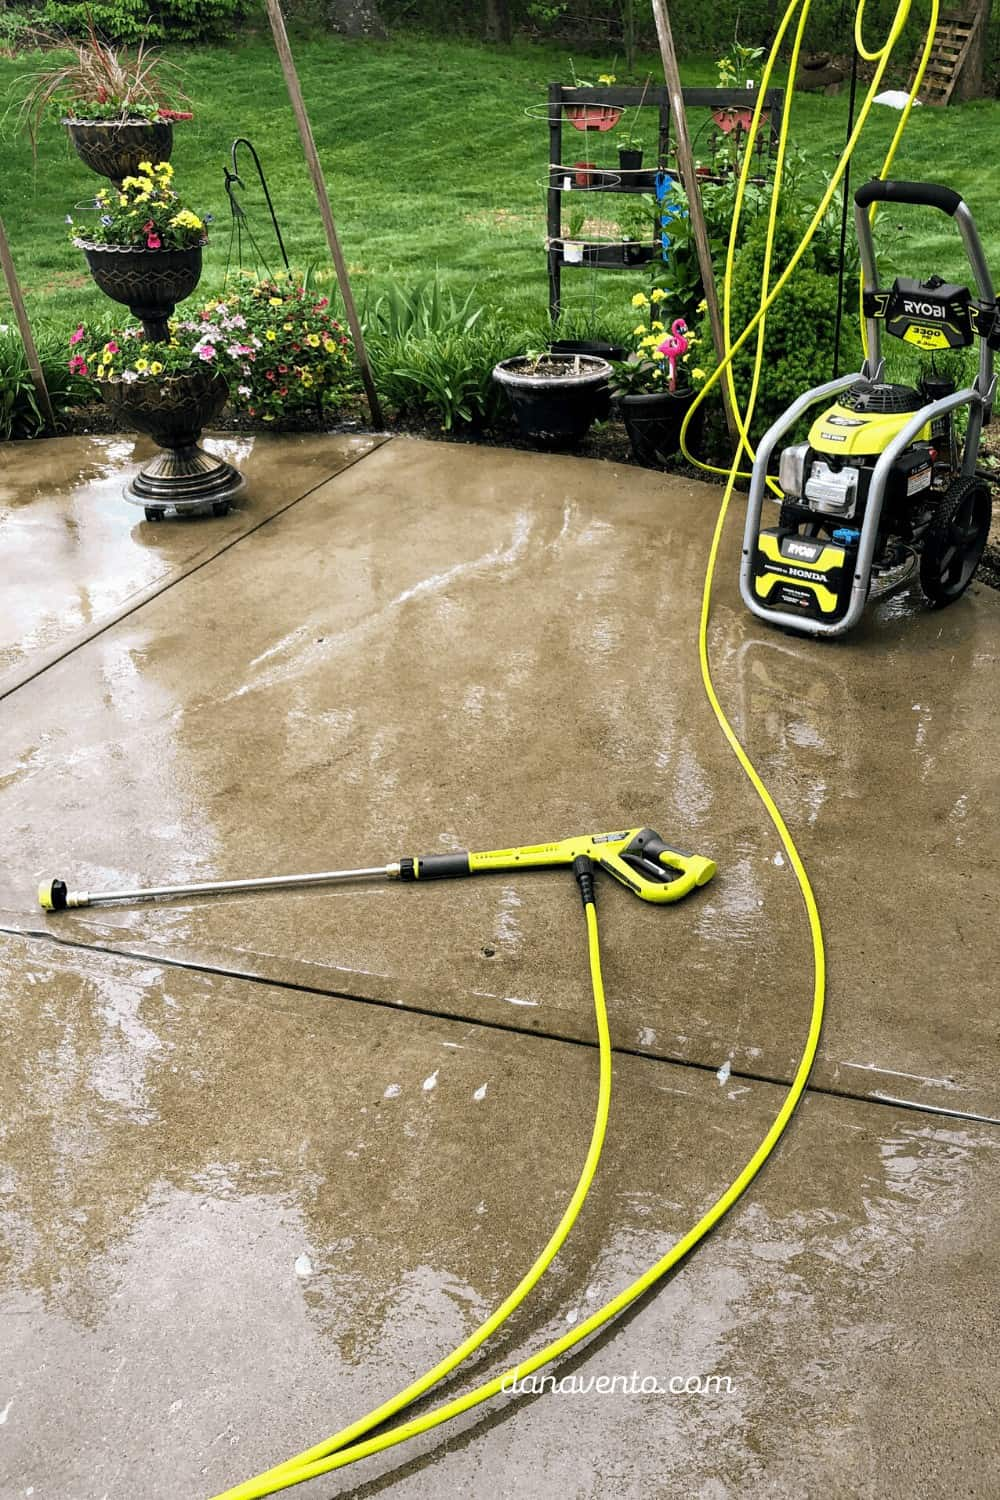 RYOBI 5-in-1 Power washing nozzle attached